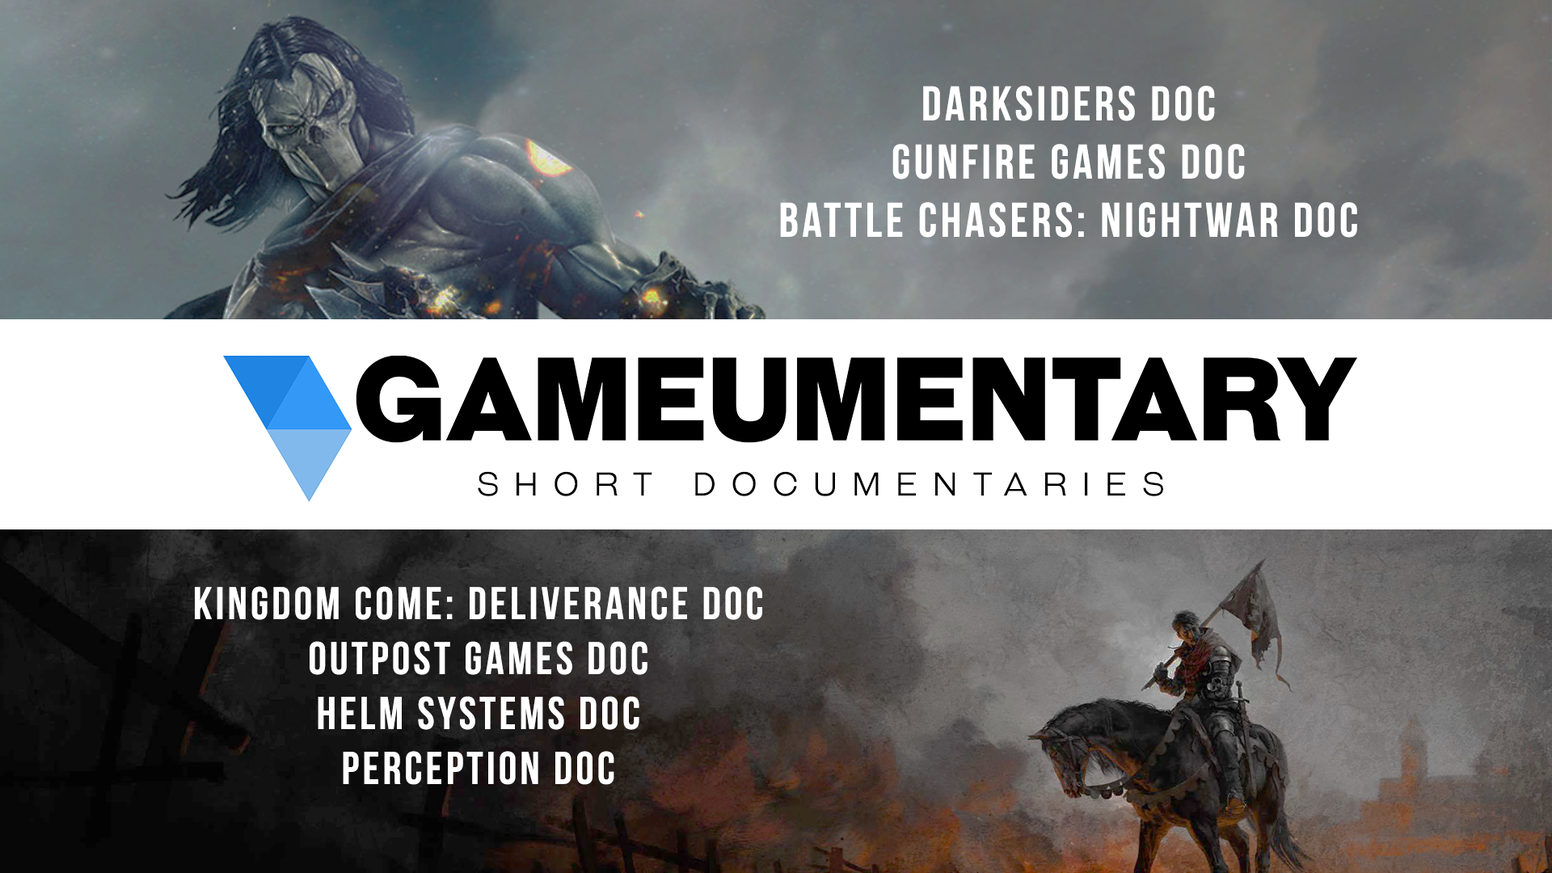 Gameumentary Video Game Documentaries By Gameumentary Kickstarter - Doc games